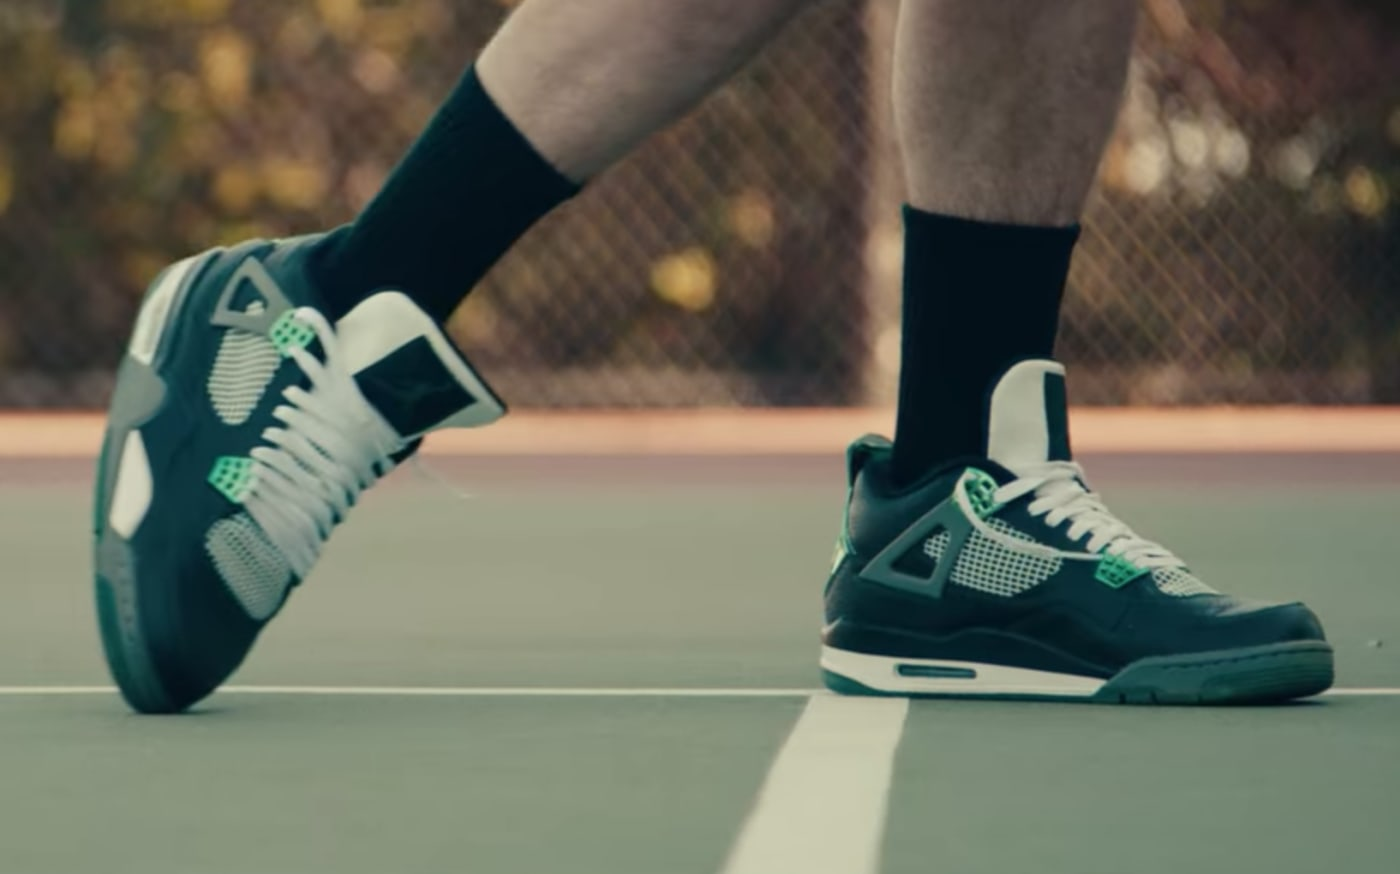 A pair of Oregon Air Jordan 4s gets scuffed in the Netflix show Sneakerheads